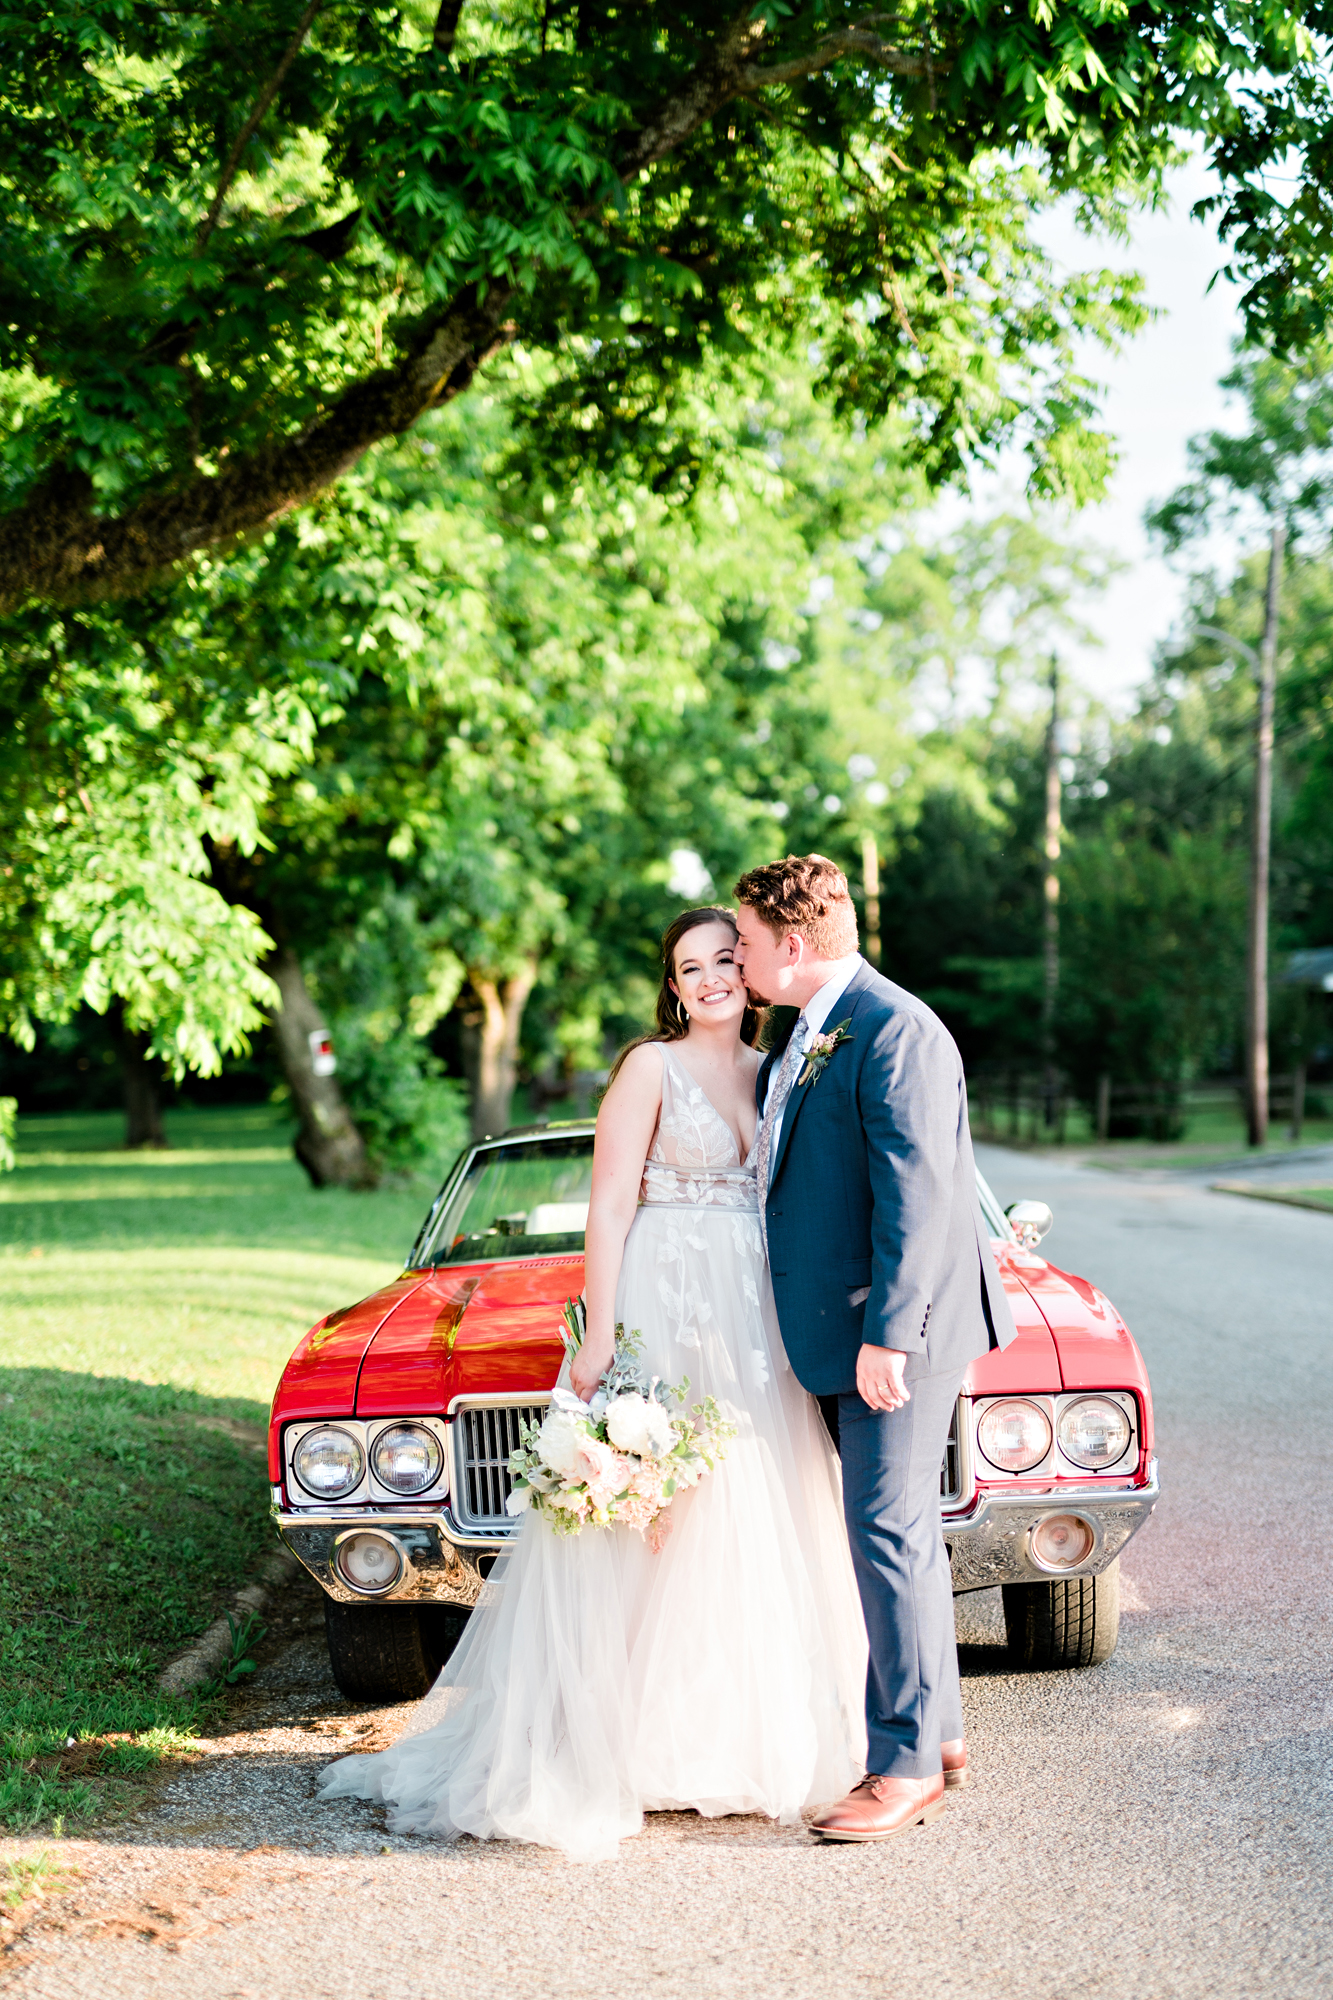 Eclectic-Alabama-Wedding-Photographers-Nick-Drollette-Photography-115.jpg